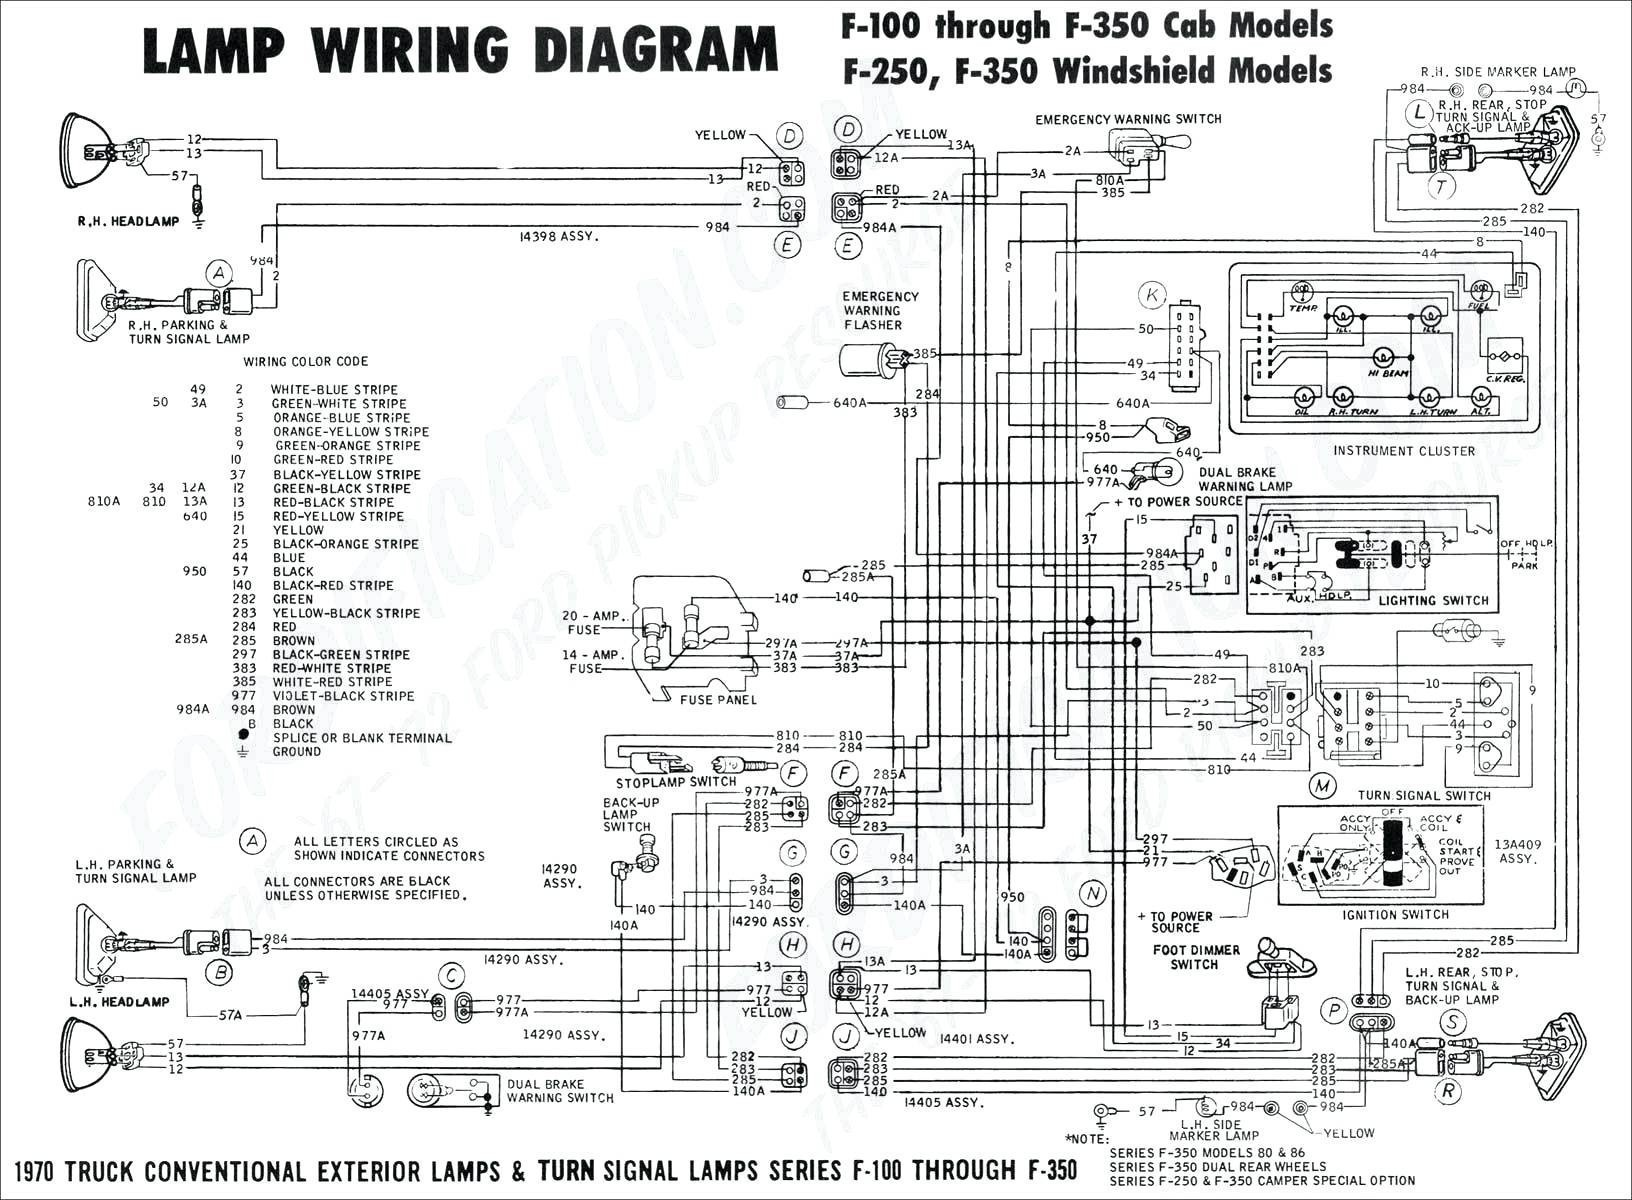 2004 ford Escape Engine Diagram 2003 ford Escape Engine Diagram 7 2002 ford Taurus Wiring Diagram Of 2004 ford Escape Engine Diagram